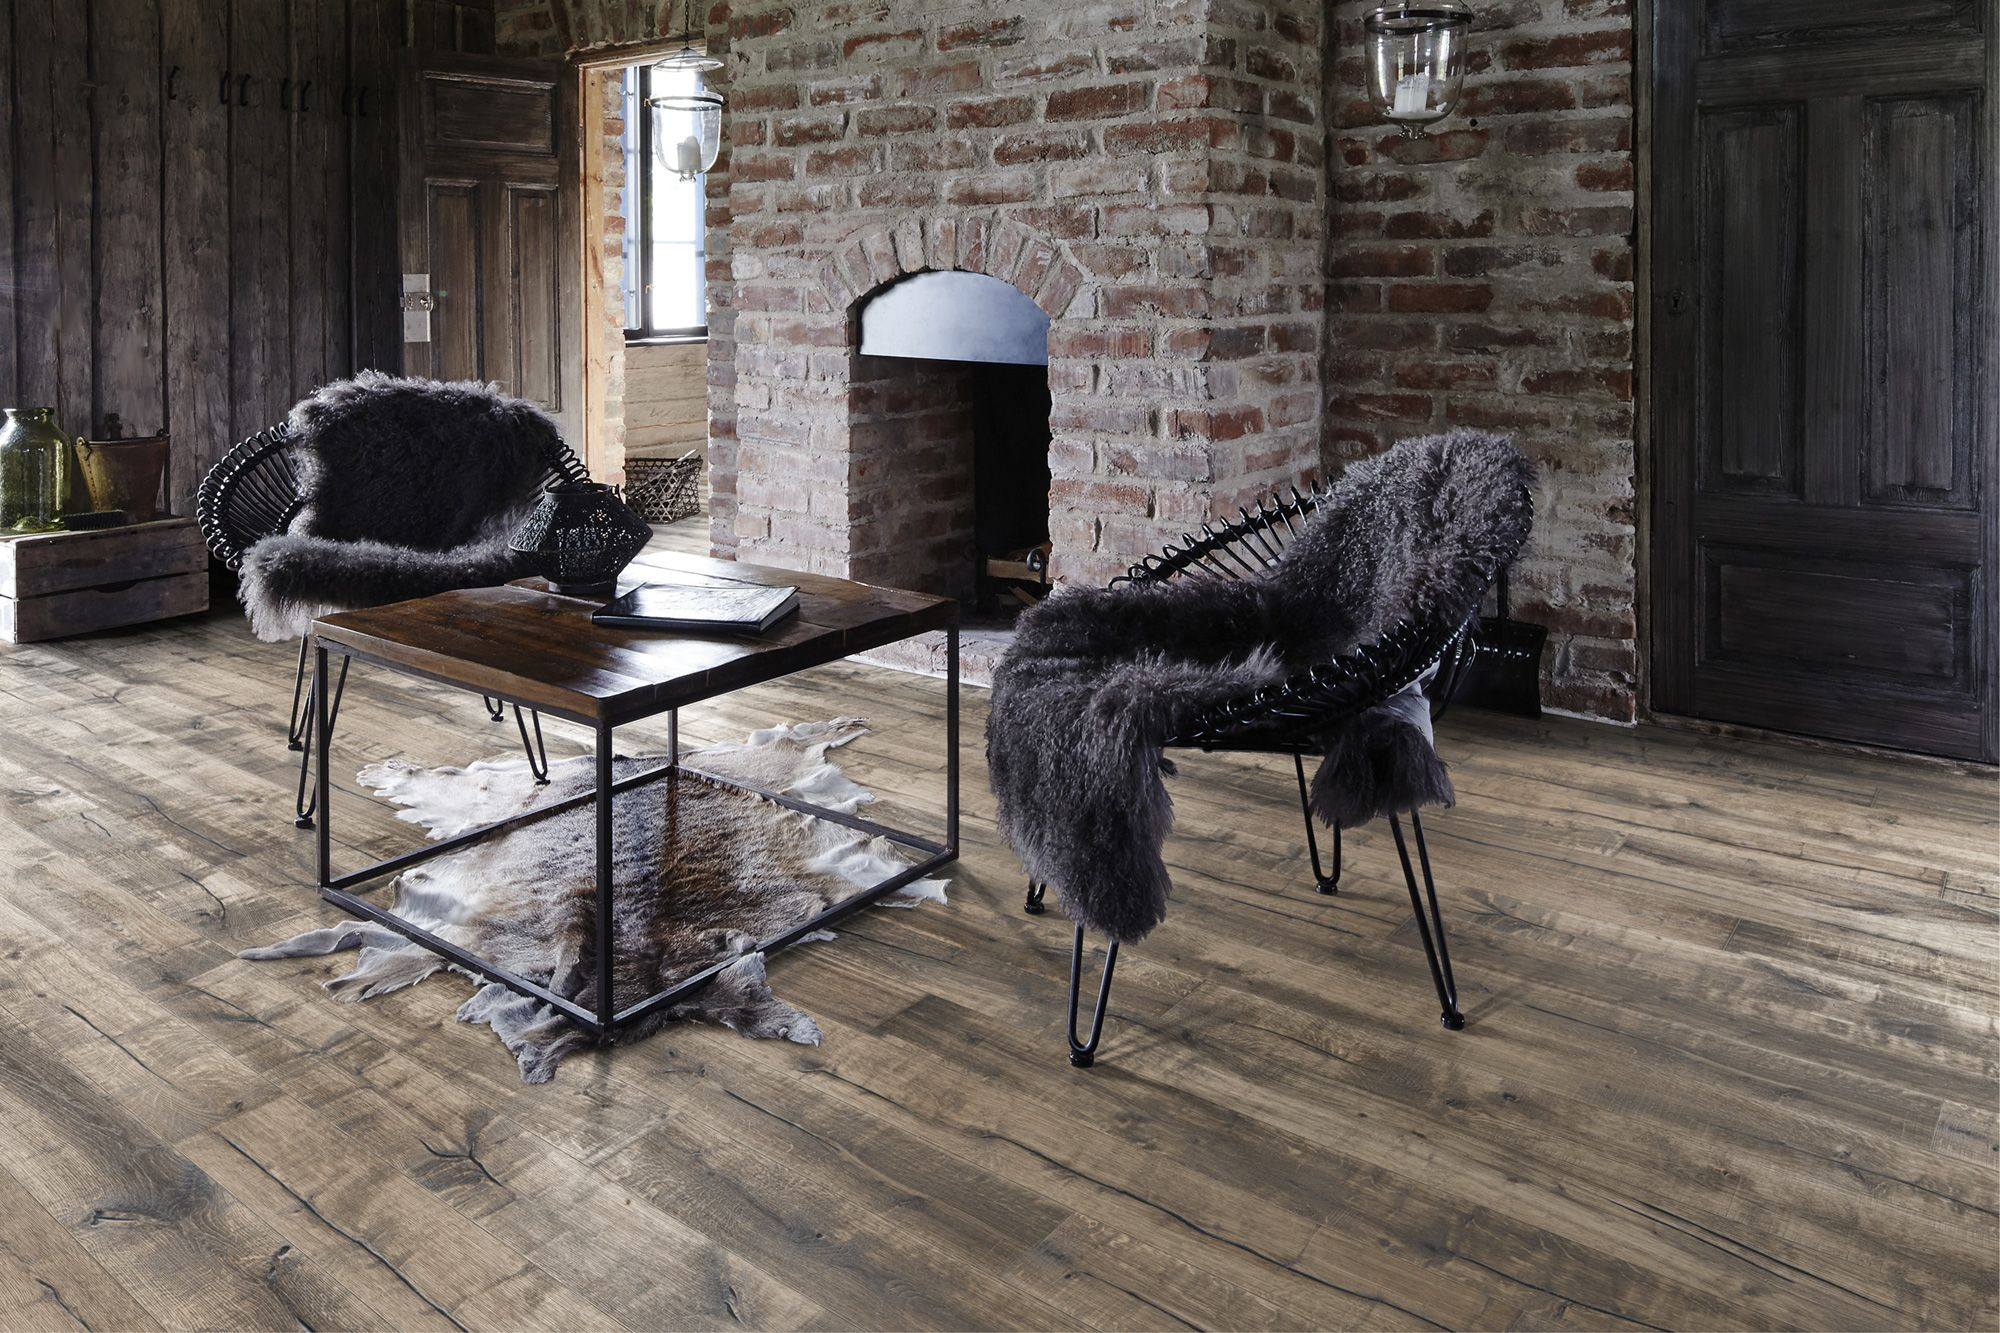 kahrs hardwood flooring distributors of weekend escape right in the heart of the swedish cultural landscape with flooring in focus kahrs handbord michael john flooring